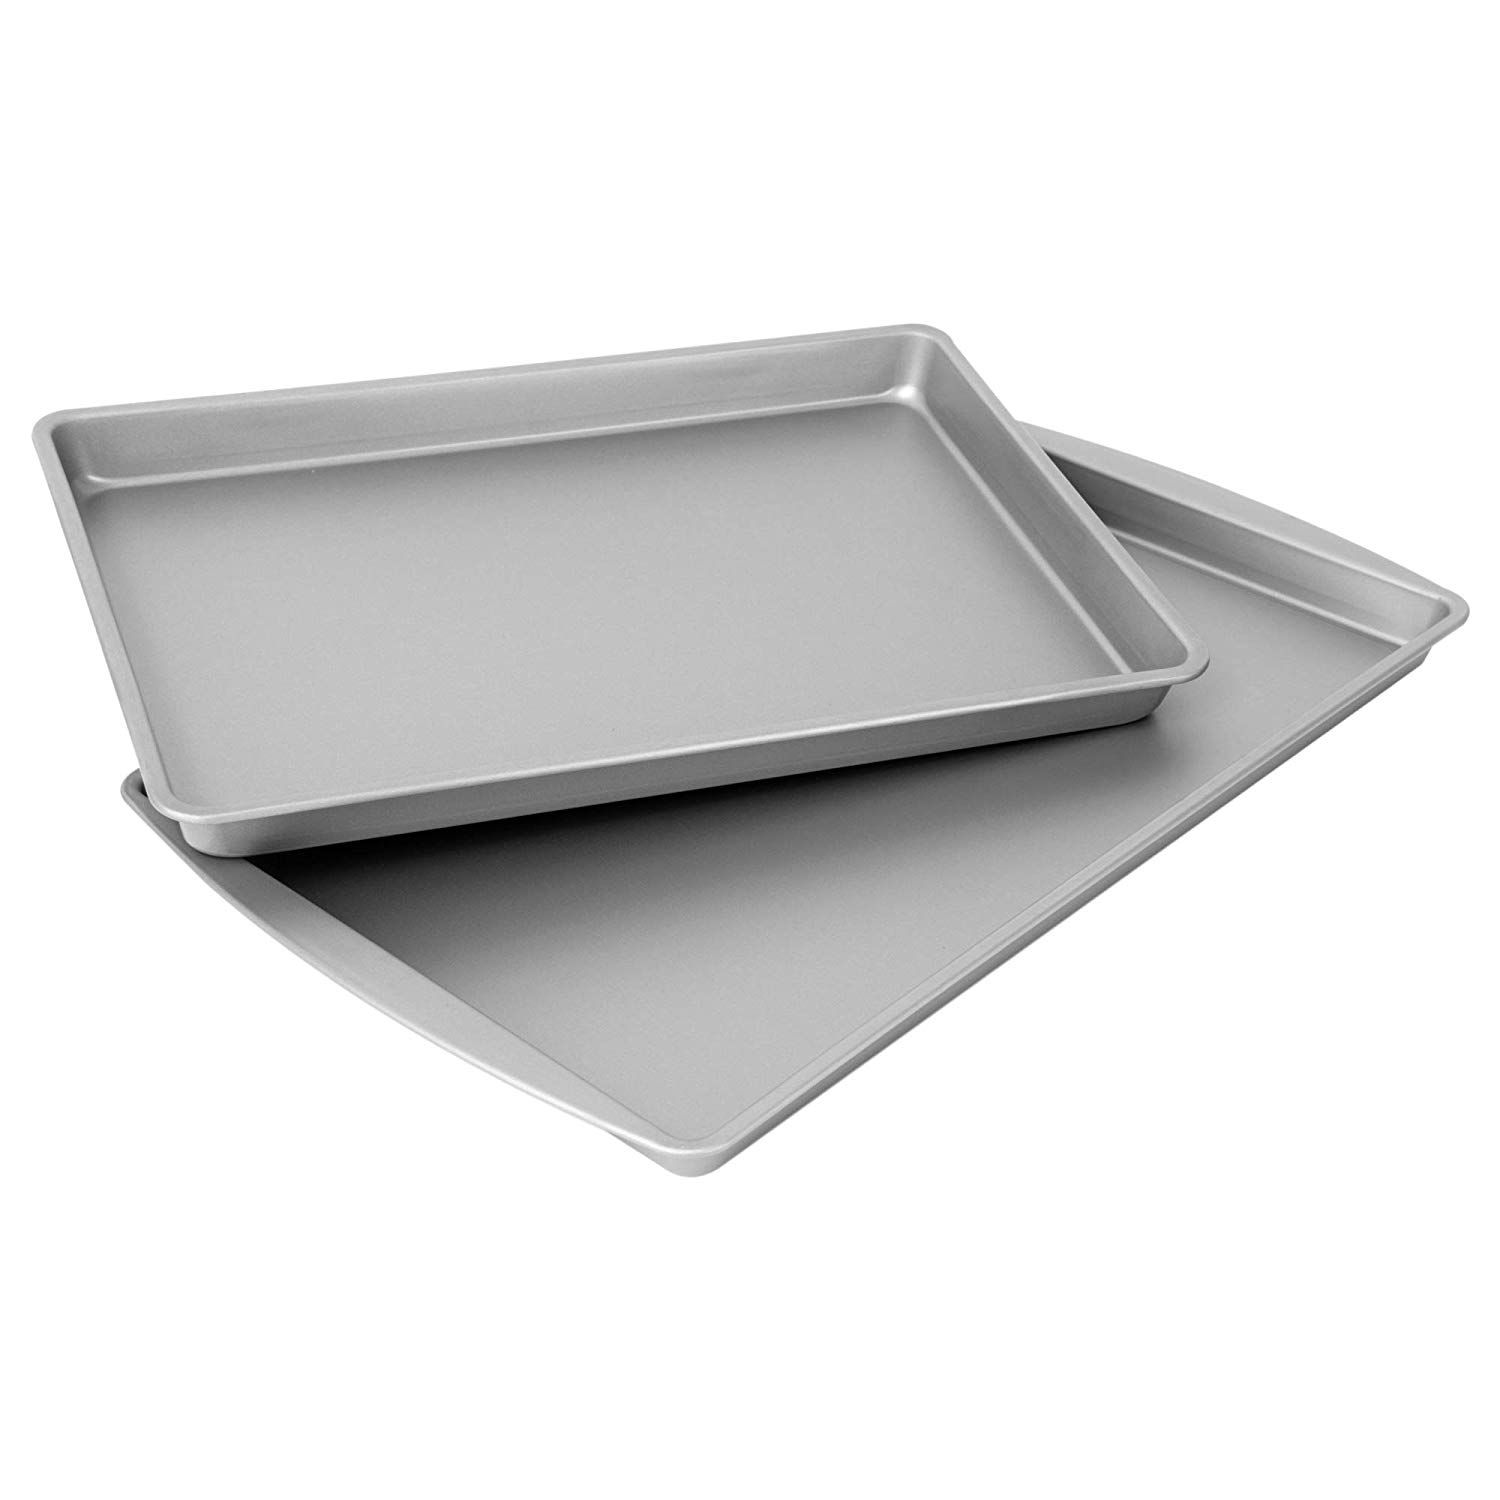 Ovenstuff Non Stick Cookie Pan And Sheet Pan Set Includes Two Duraglide Coated Nonstick Steel Pans Includes Large 17 3a X Sheet Cake Pan Pan Set Sheet Pan